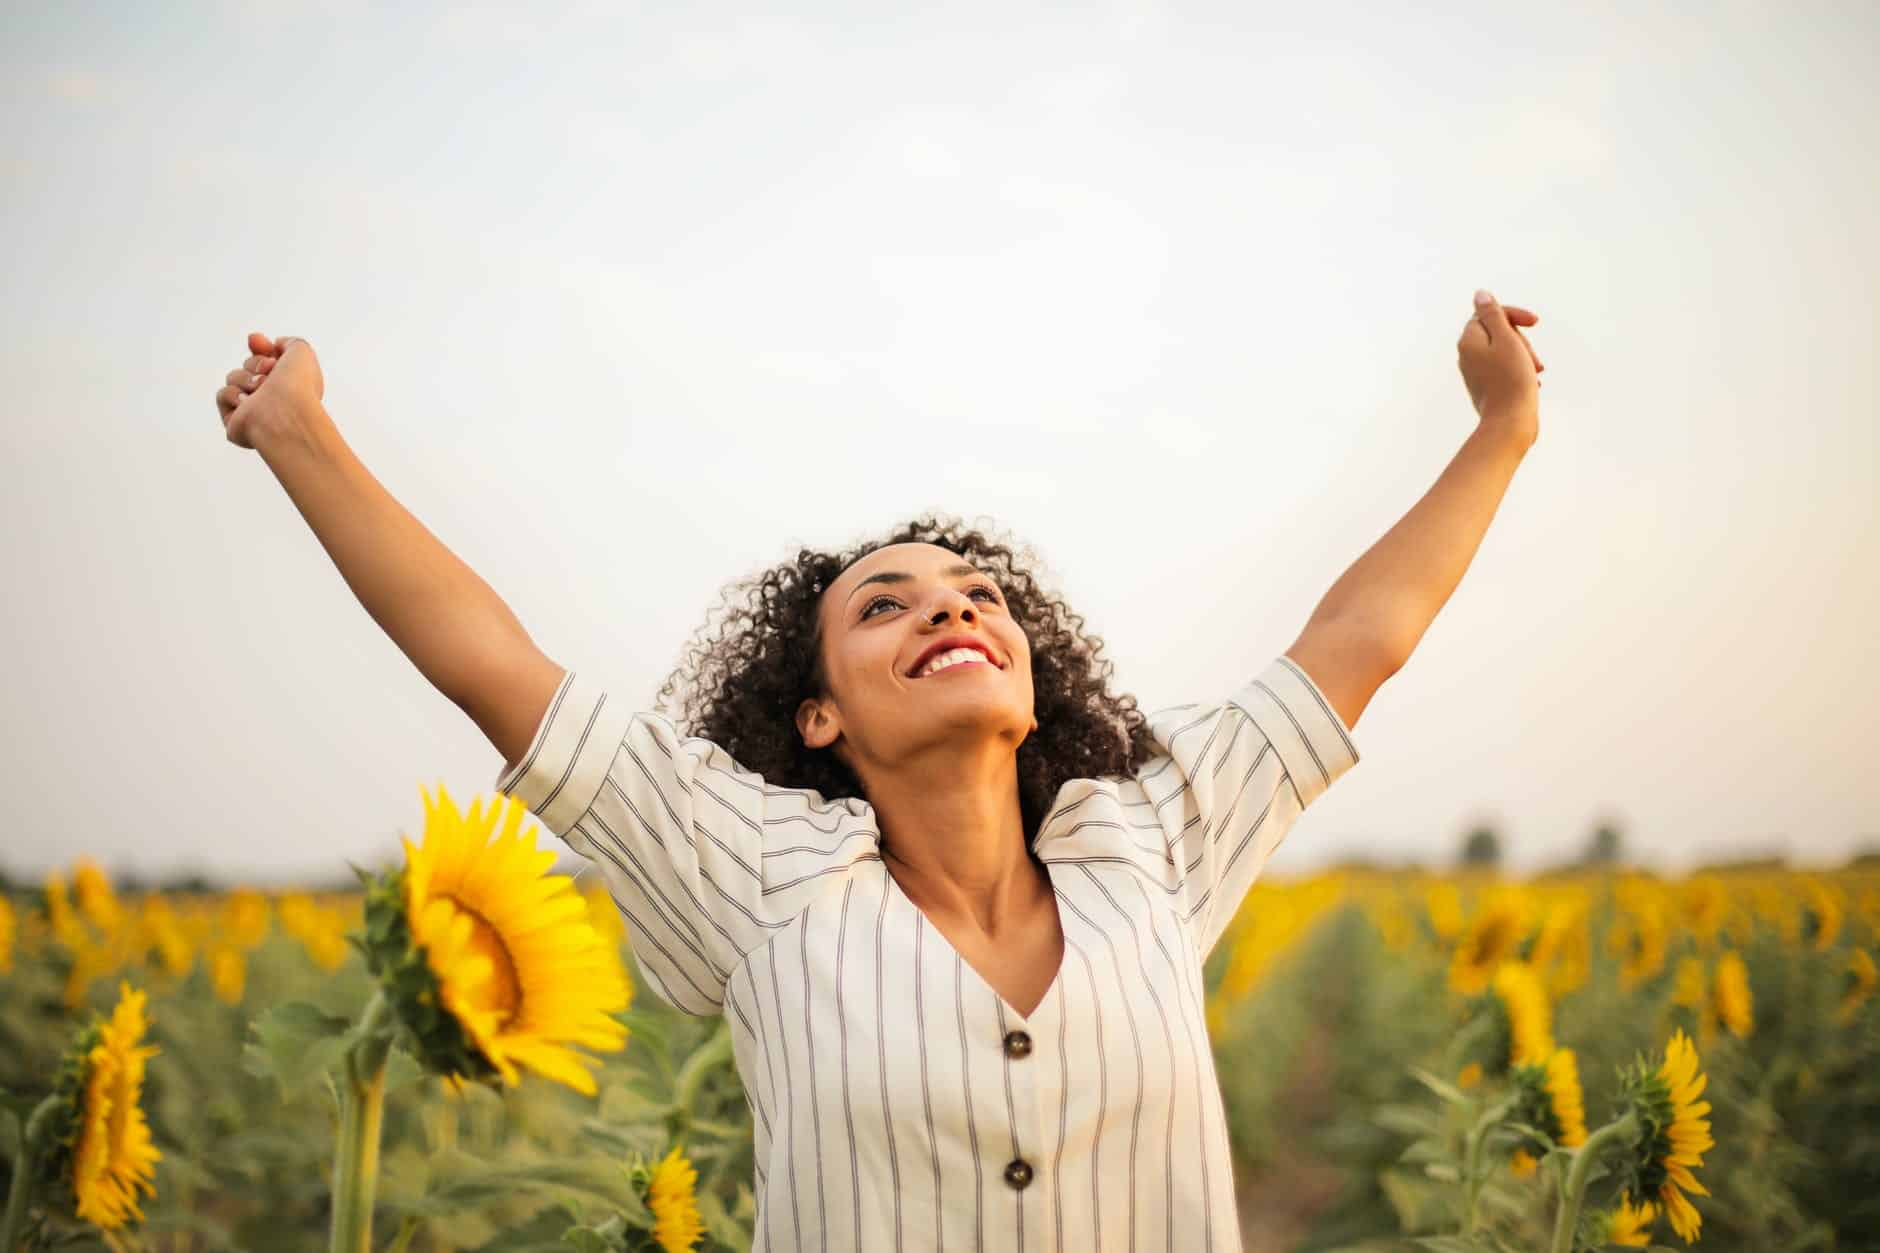 photo of woman standing on sunflower field celebrating